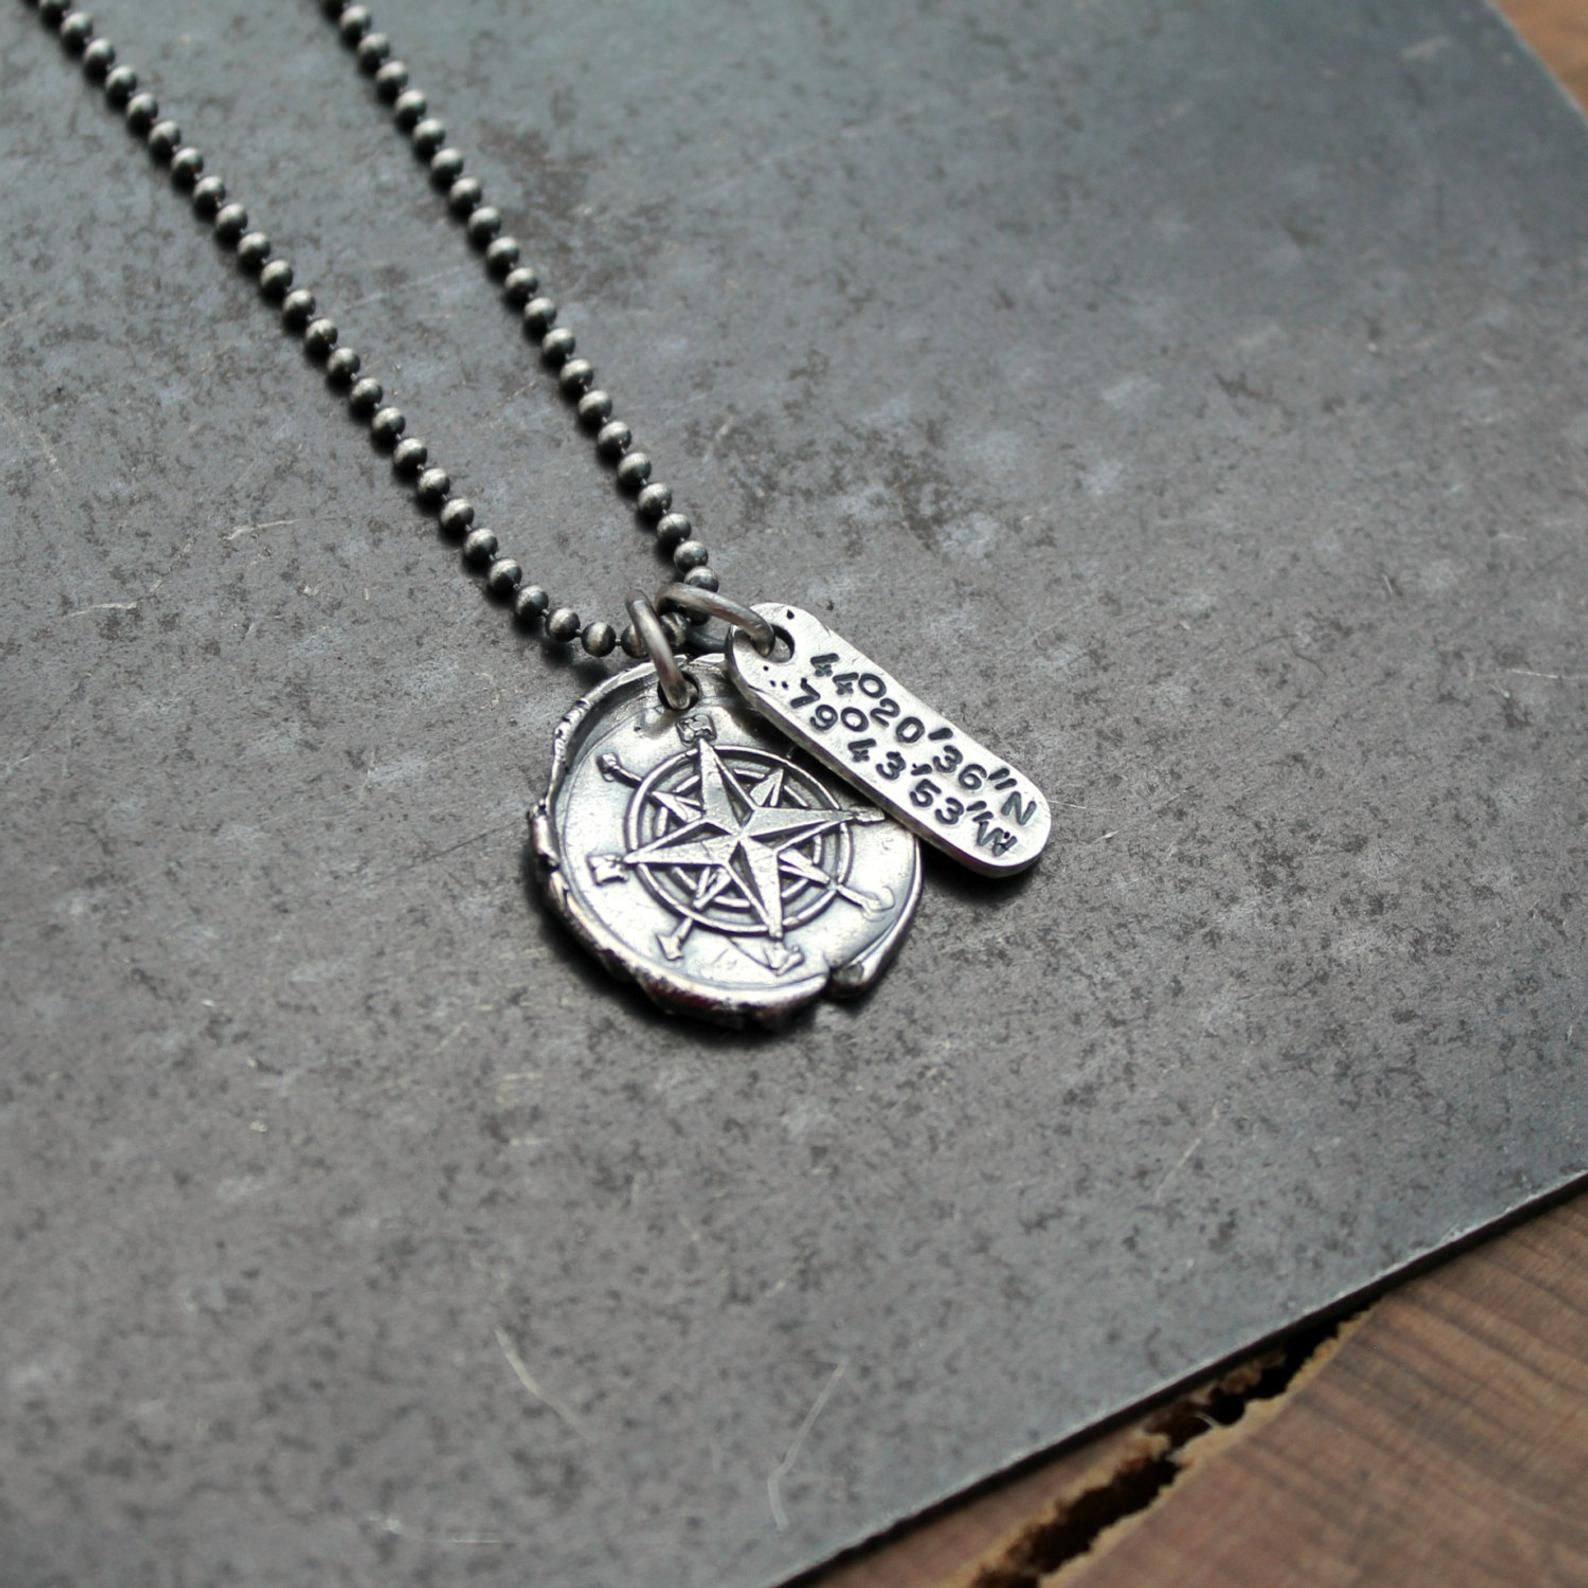 Personalized Coordinates Compass Necklace Custom Location Etsy In 2020 Compass Necklace Compass Necklace Silver Coordinates Necklace Silver